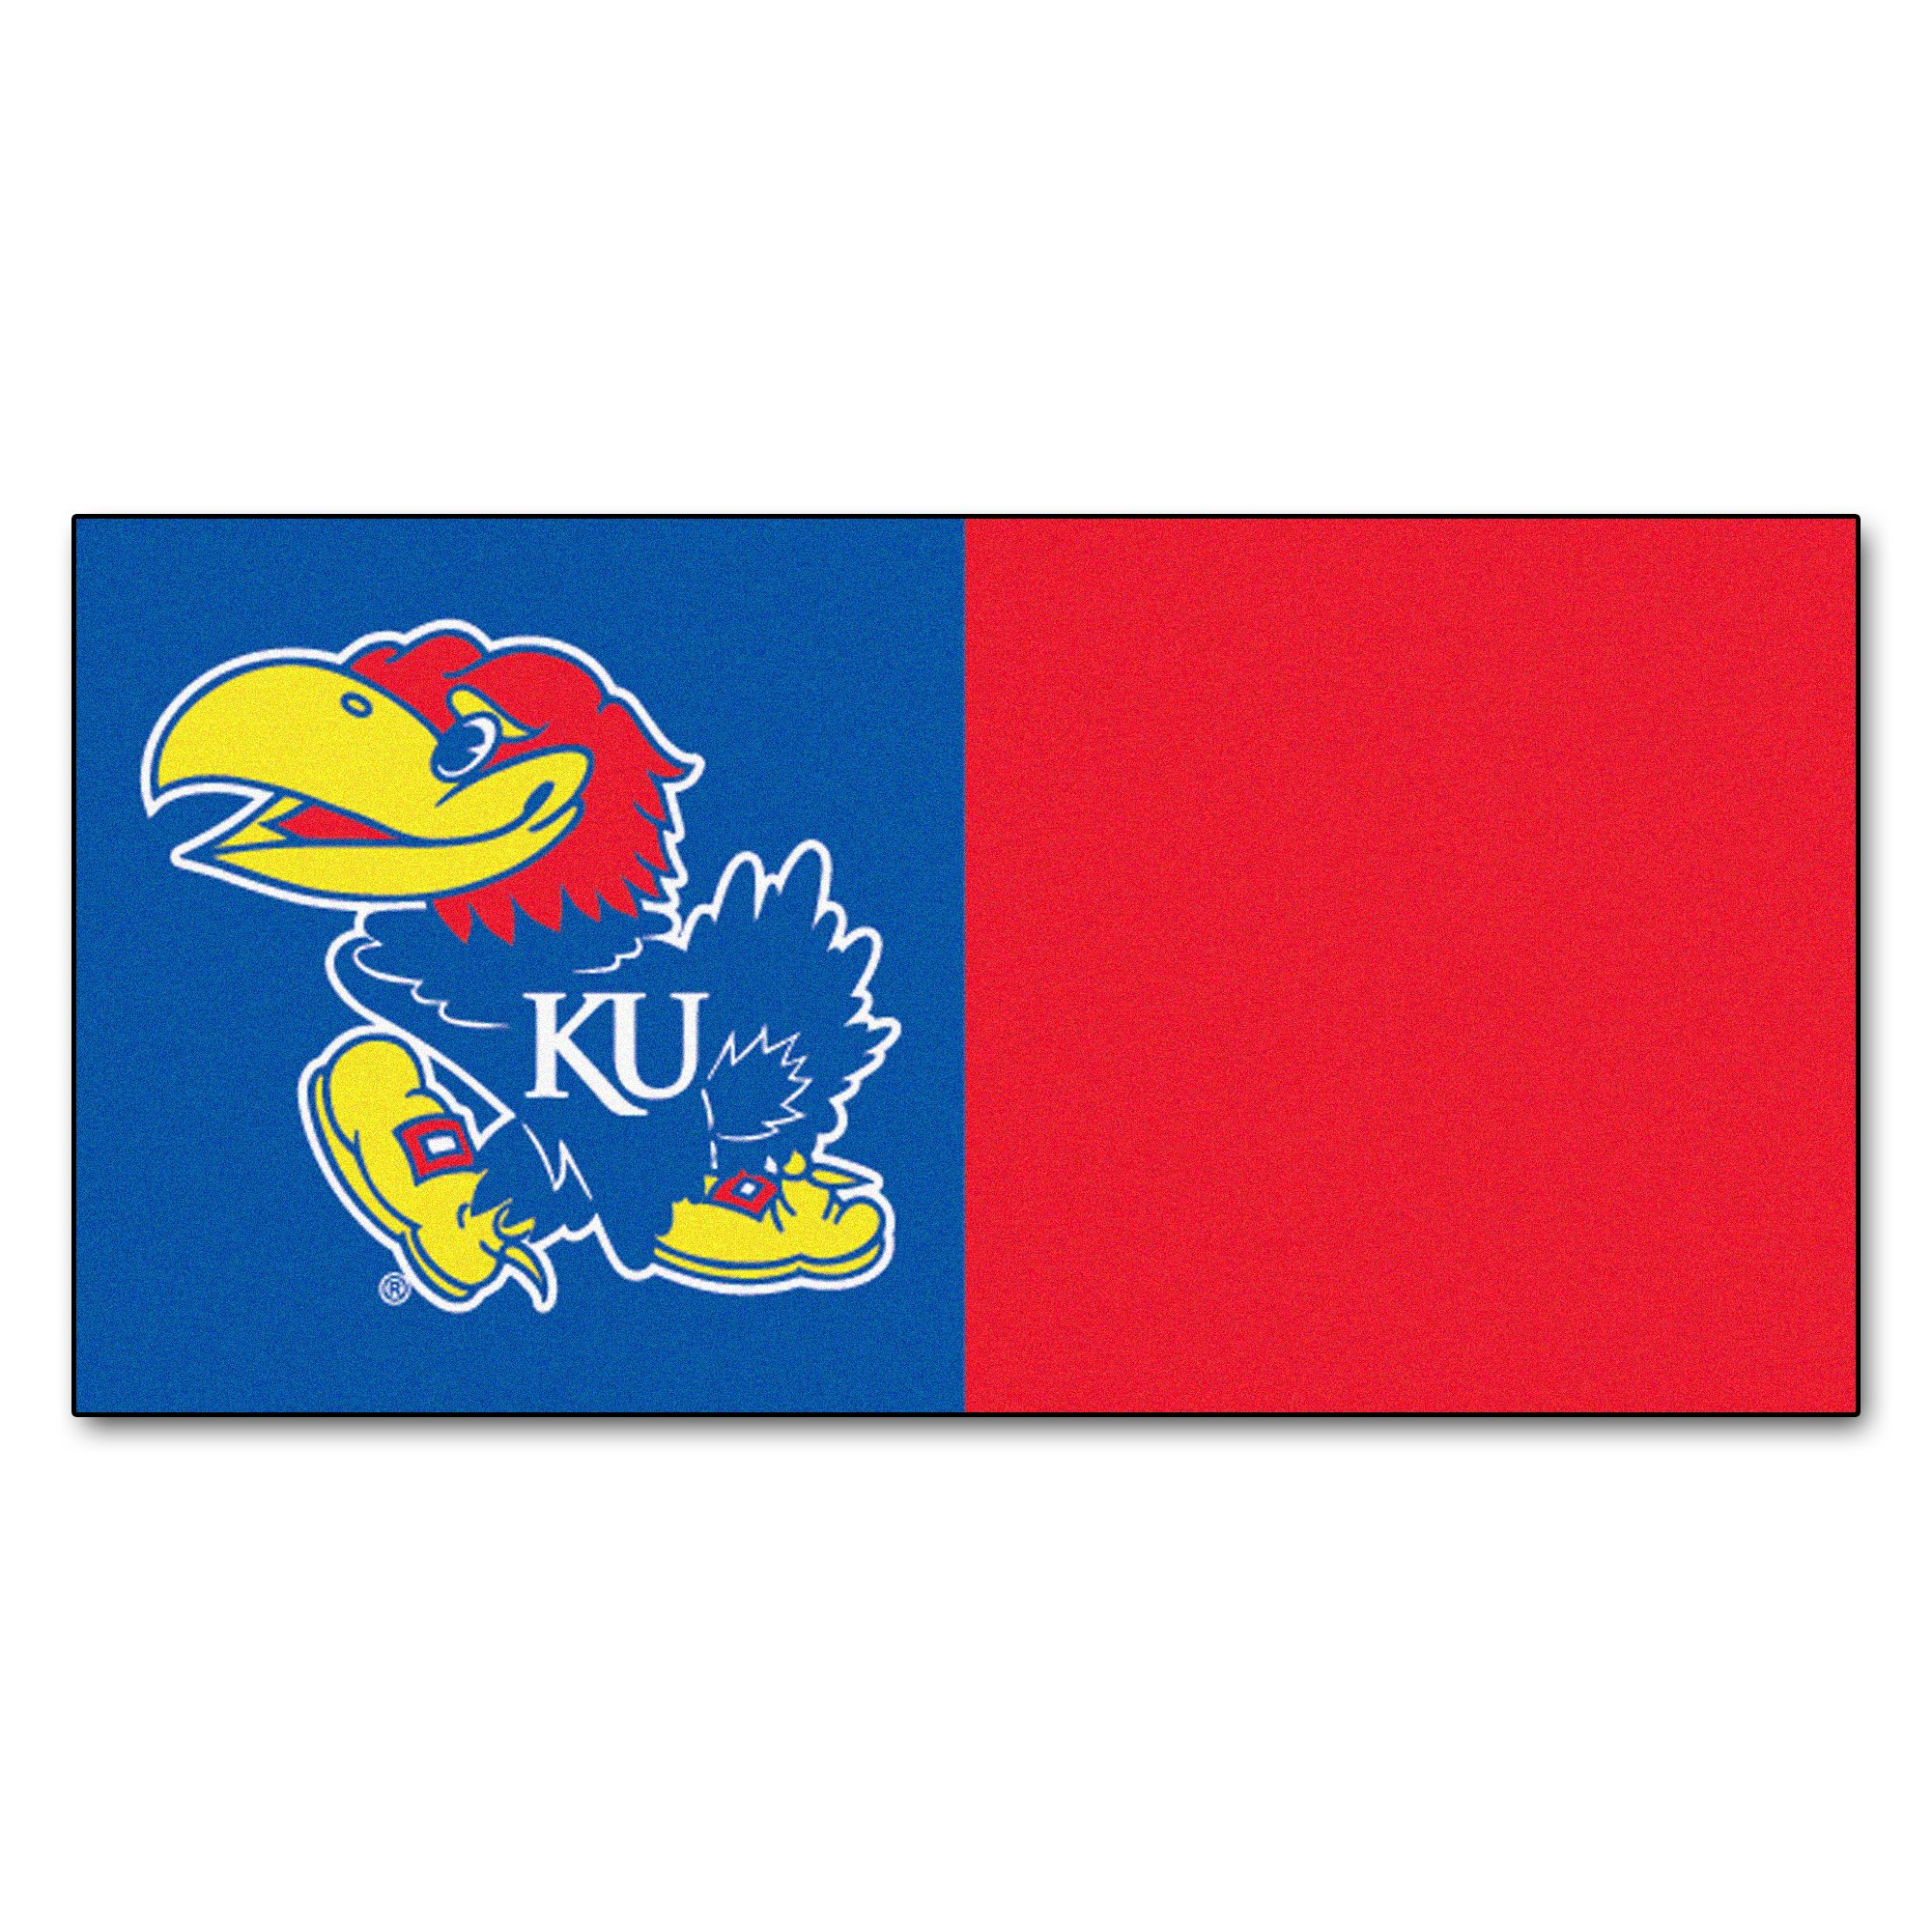 FANMATS NCAA University of Kansas Jayhawks Nylon Face Team Carpet Tiles